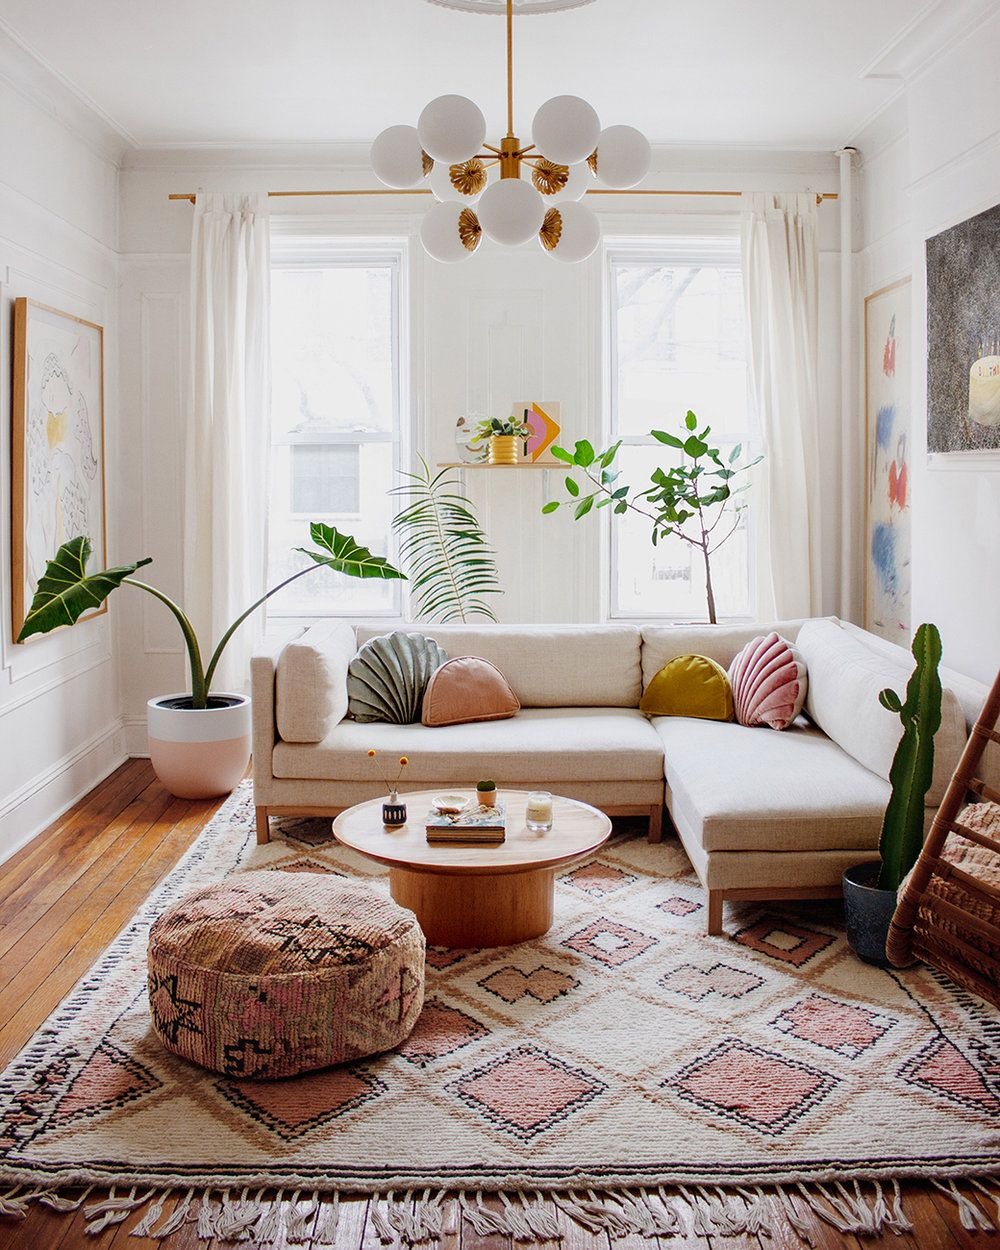 Colorful Bohemian Modern Brooklyn Apartment + How To Get The Look — decor8